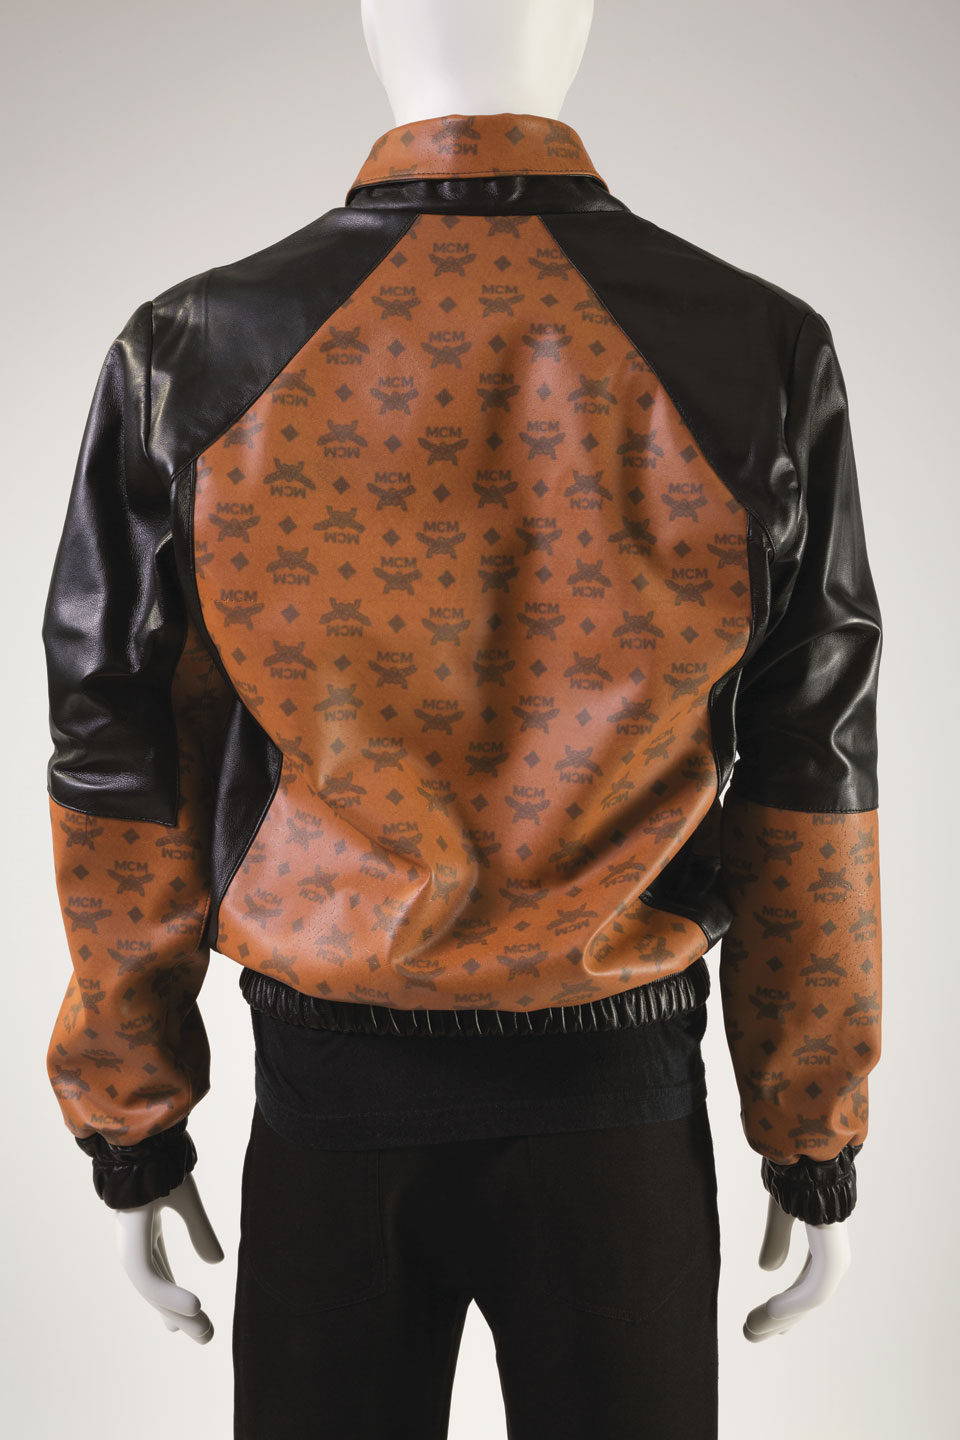 JACKET by Dapper Dan of Harlem of High-Tek Leather (faux leather, lambskin leather), 1987.